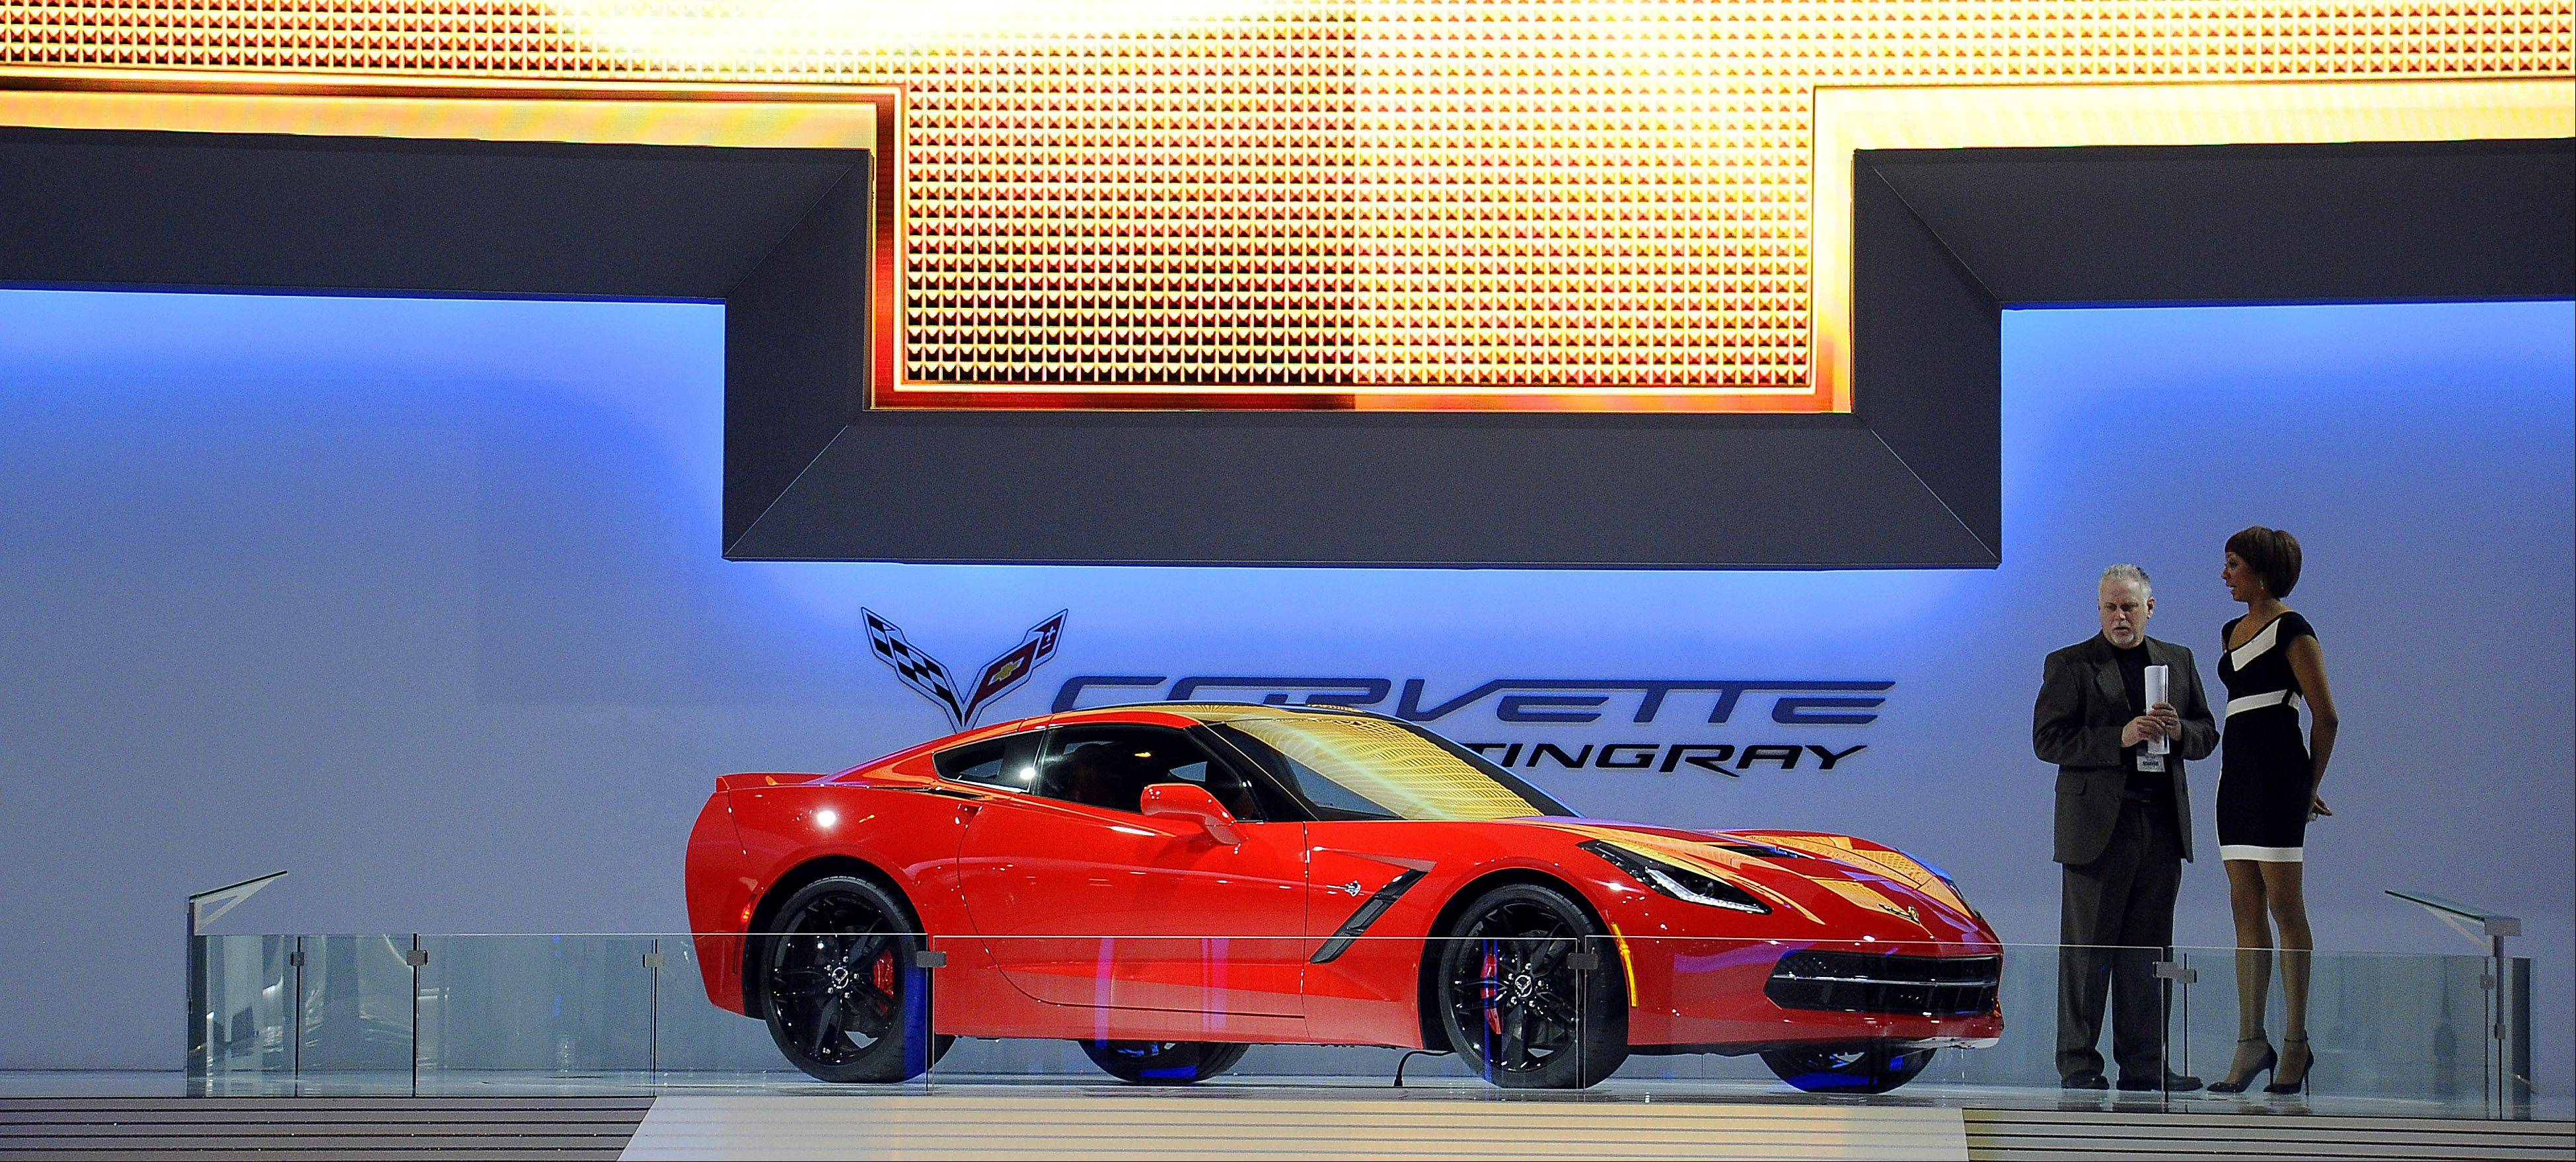 The 2014 Corvette Stingray drew plenty of gasps at the Chicago Auto Show.